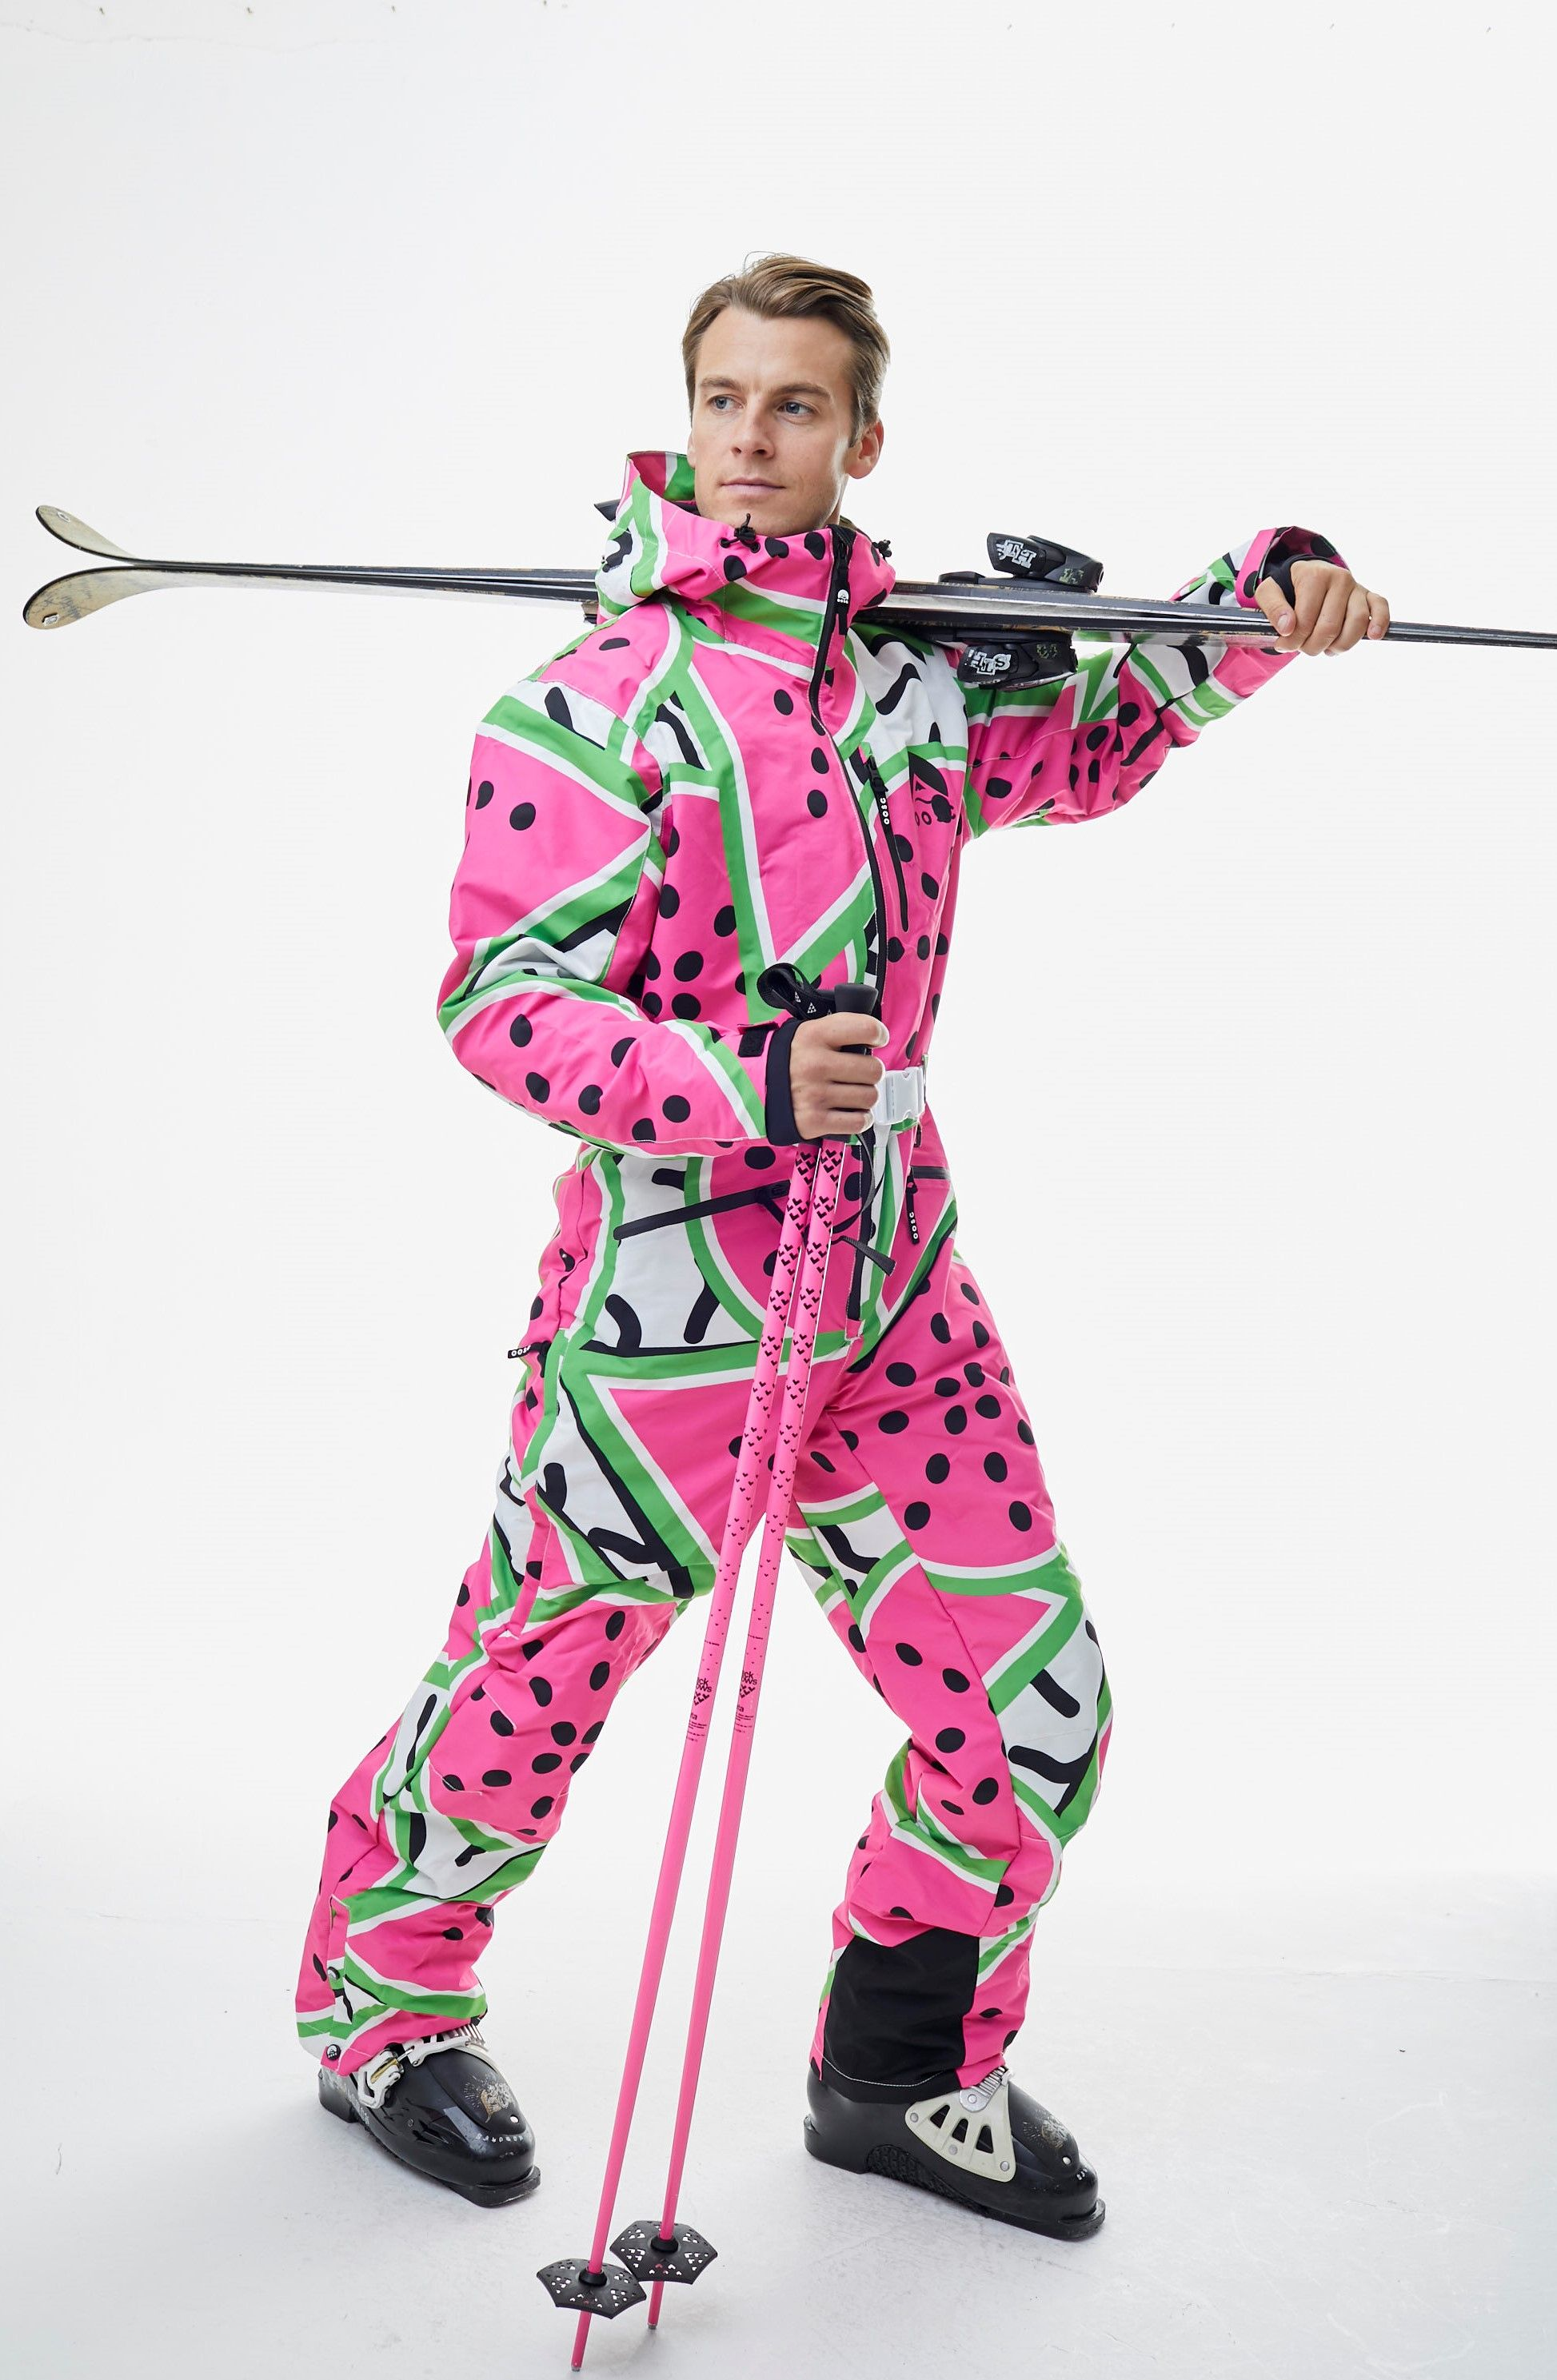 All In One Ski Suit Watermelon Oosc Clothing One Piece Clothes 90s Fashion Trending